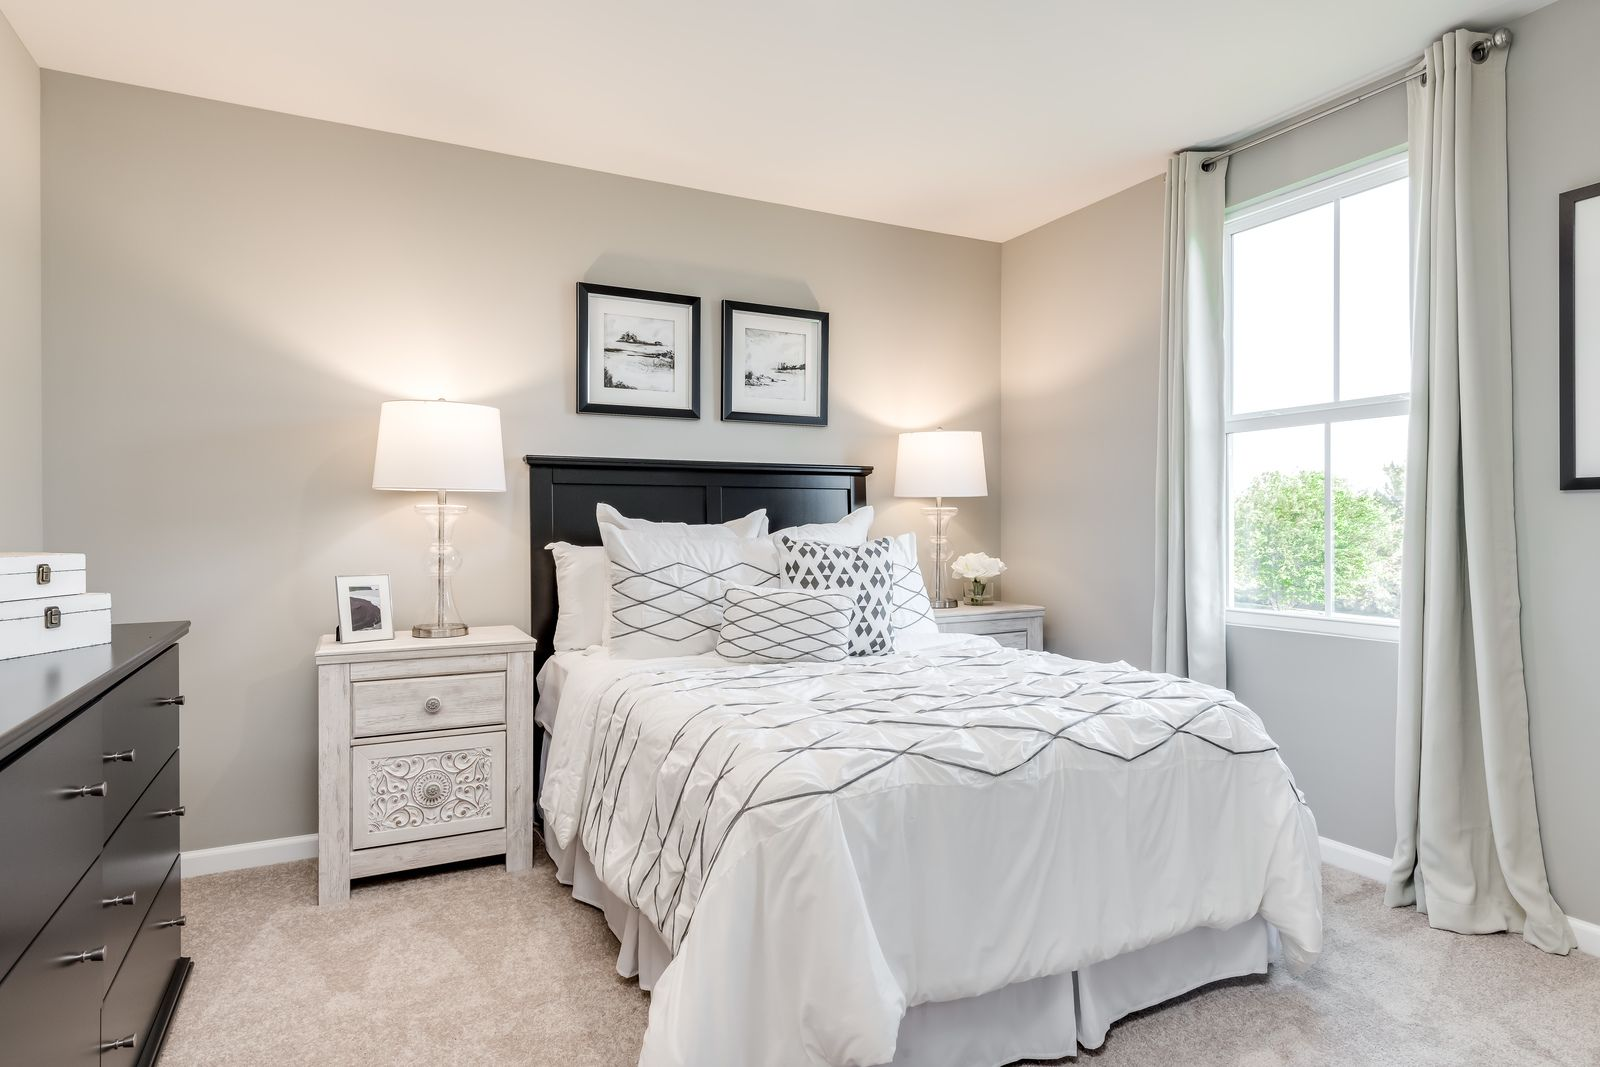 Bedroom featured in the Elm Basement By Ryan Homes in Hagerstown, MD